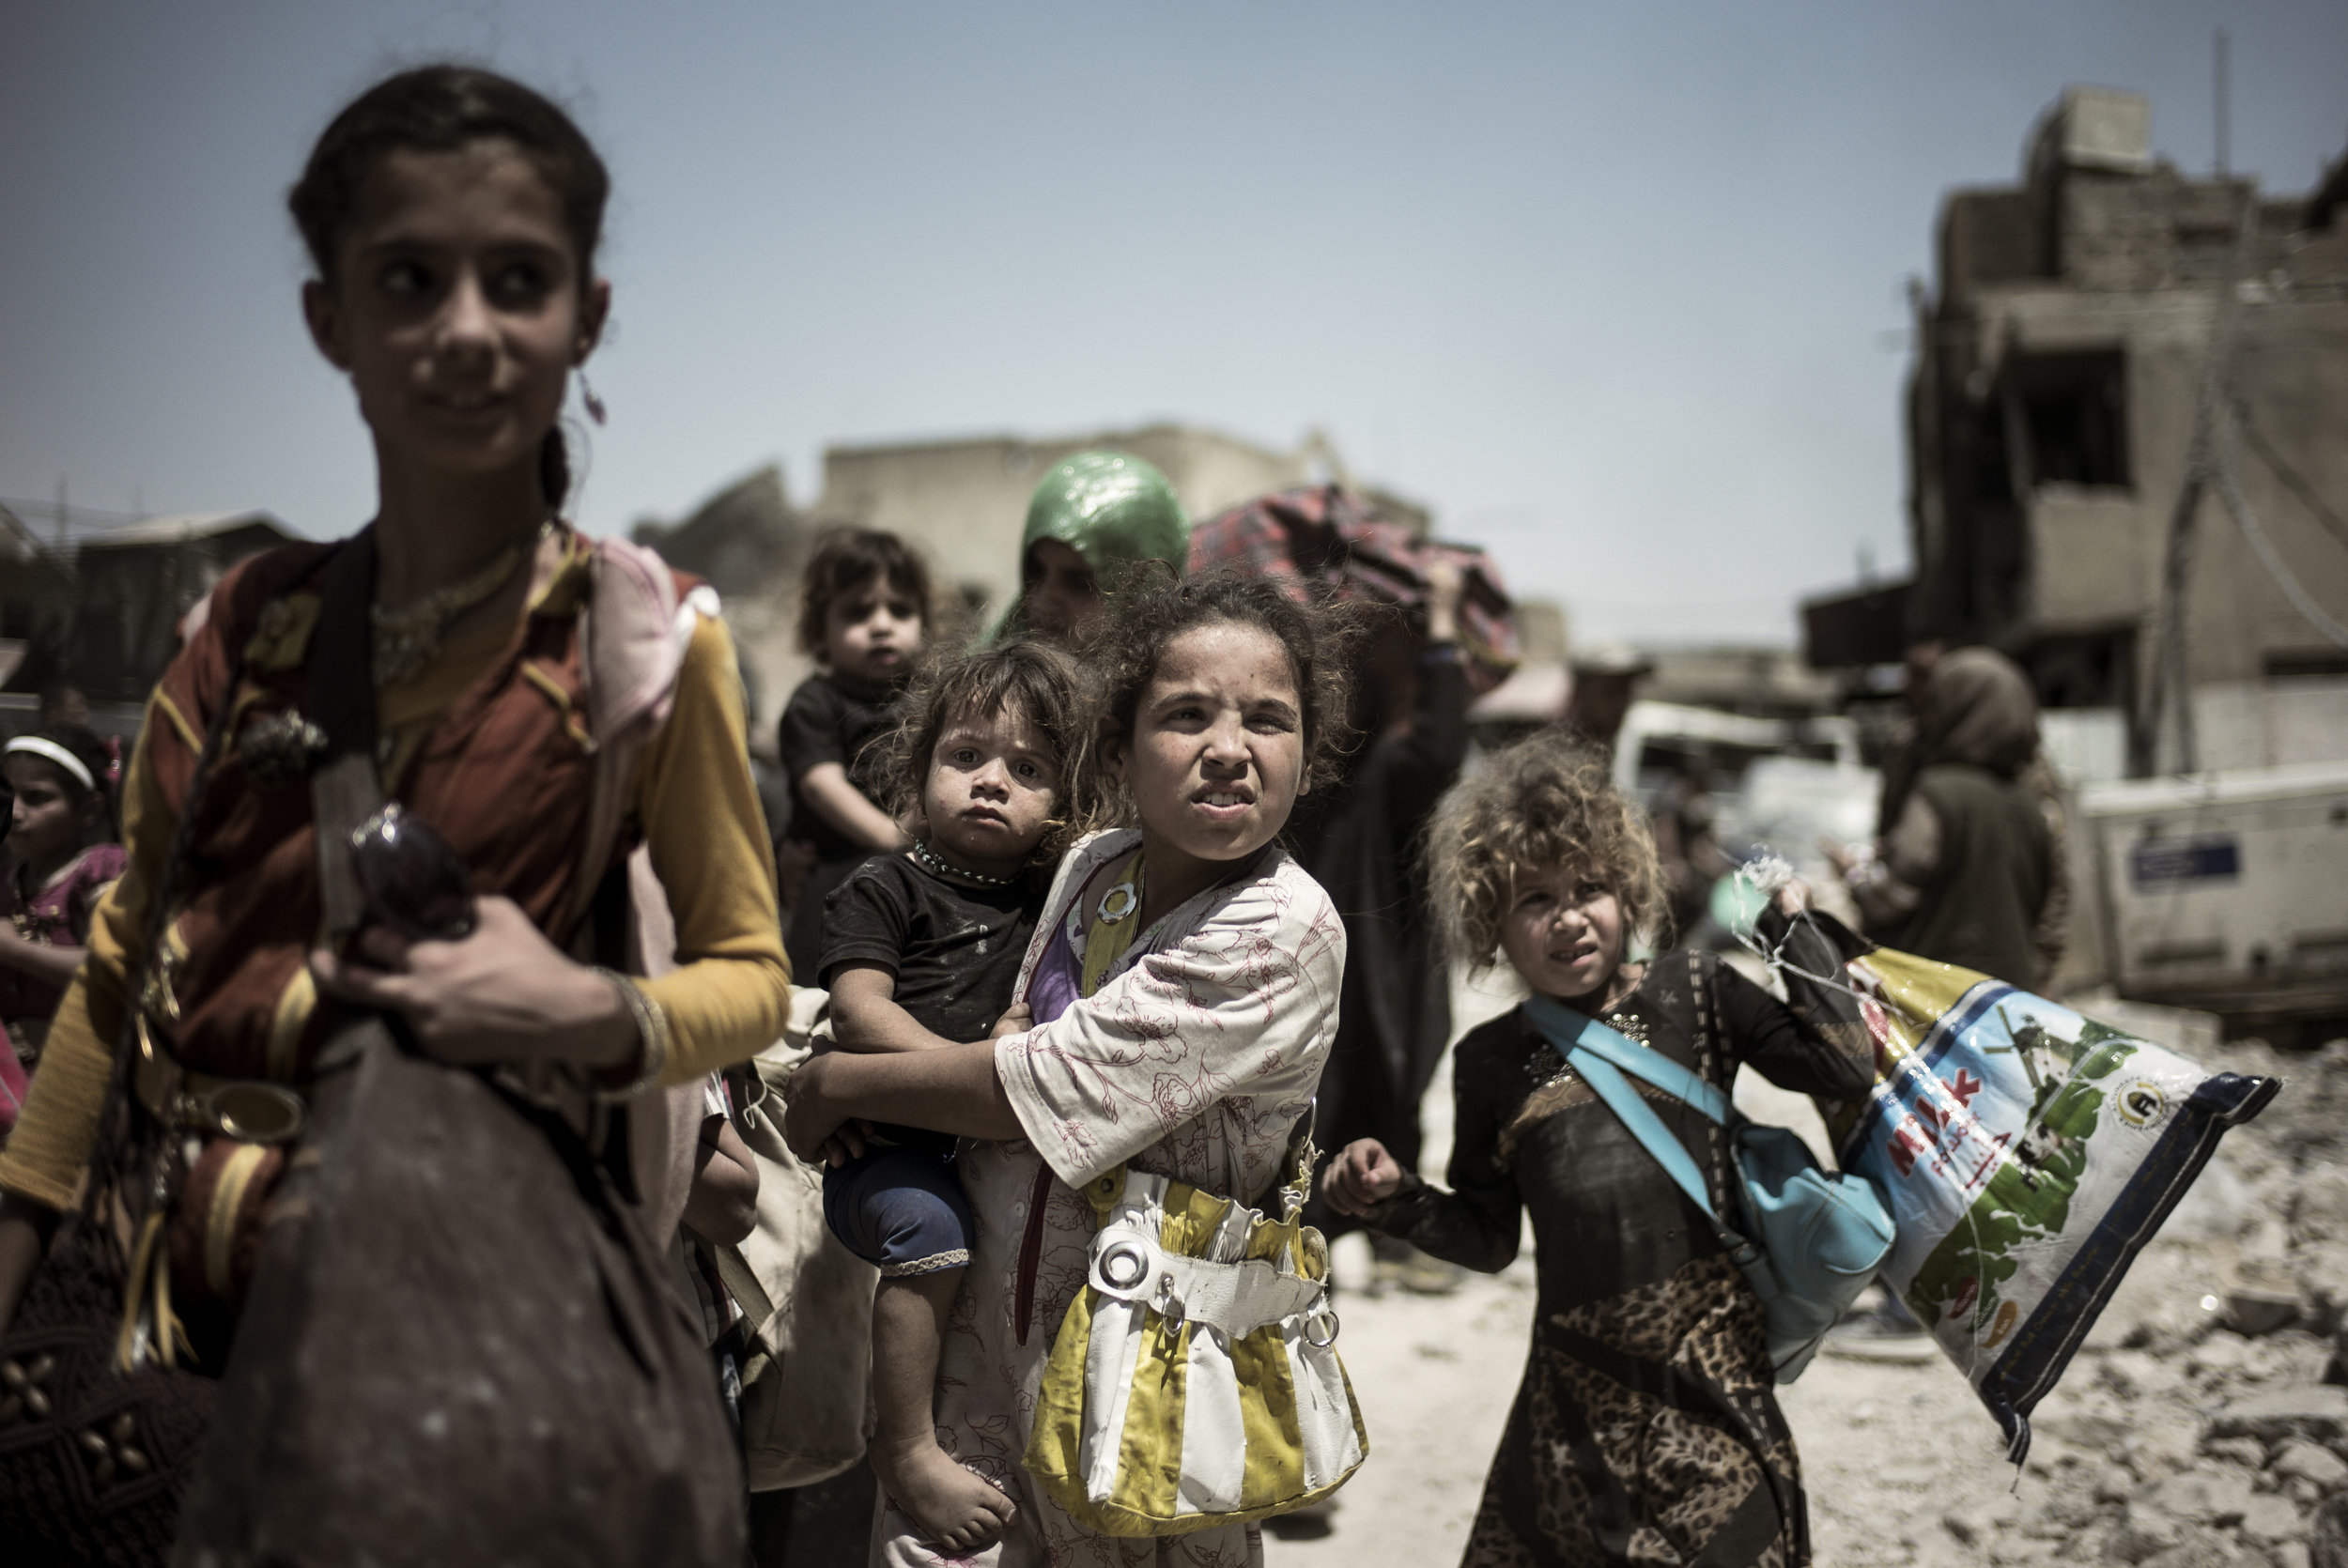 During a break in between fighting and mortar shelling civilian men, women and children take the opportunity to escape their homes and the war zone, where they have lived under siege for weeks and months.